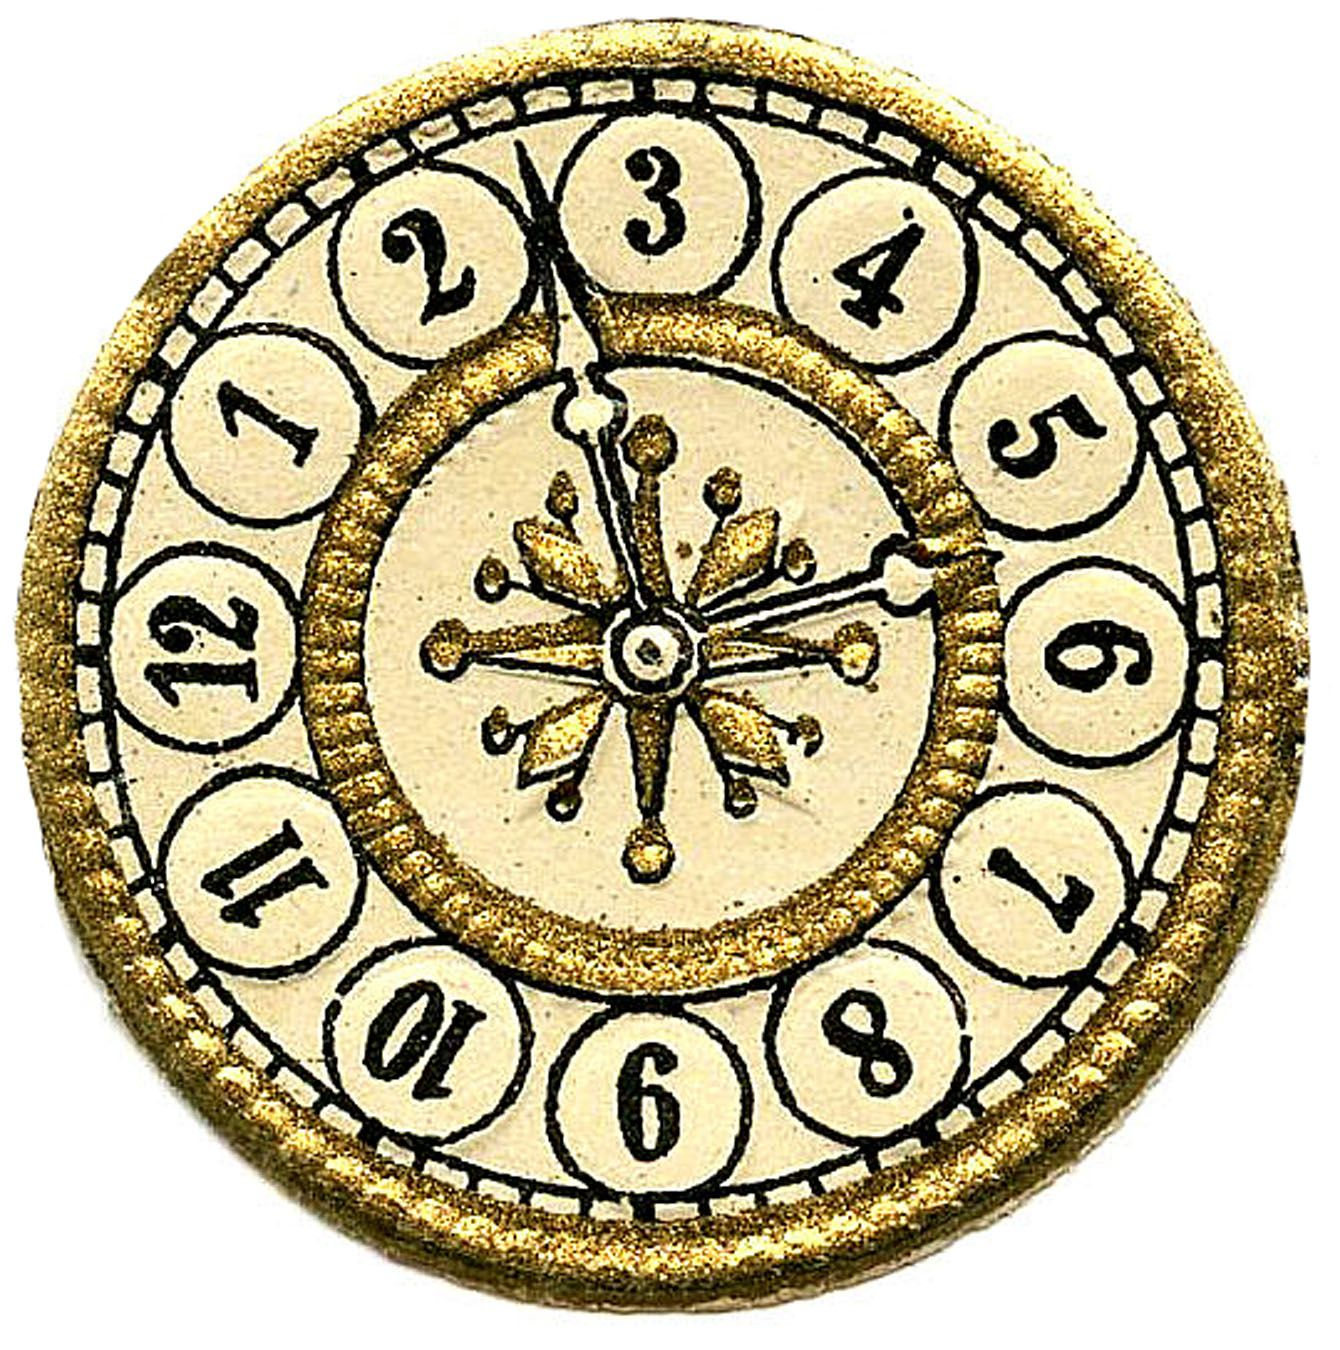 Steampunk clipart clock face.  images print your